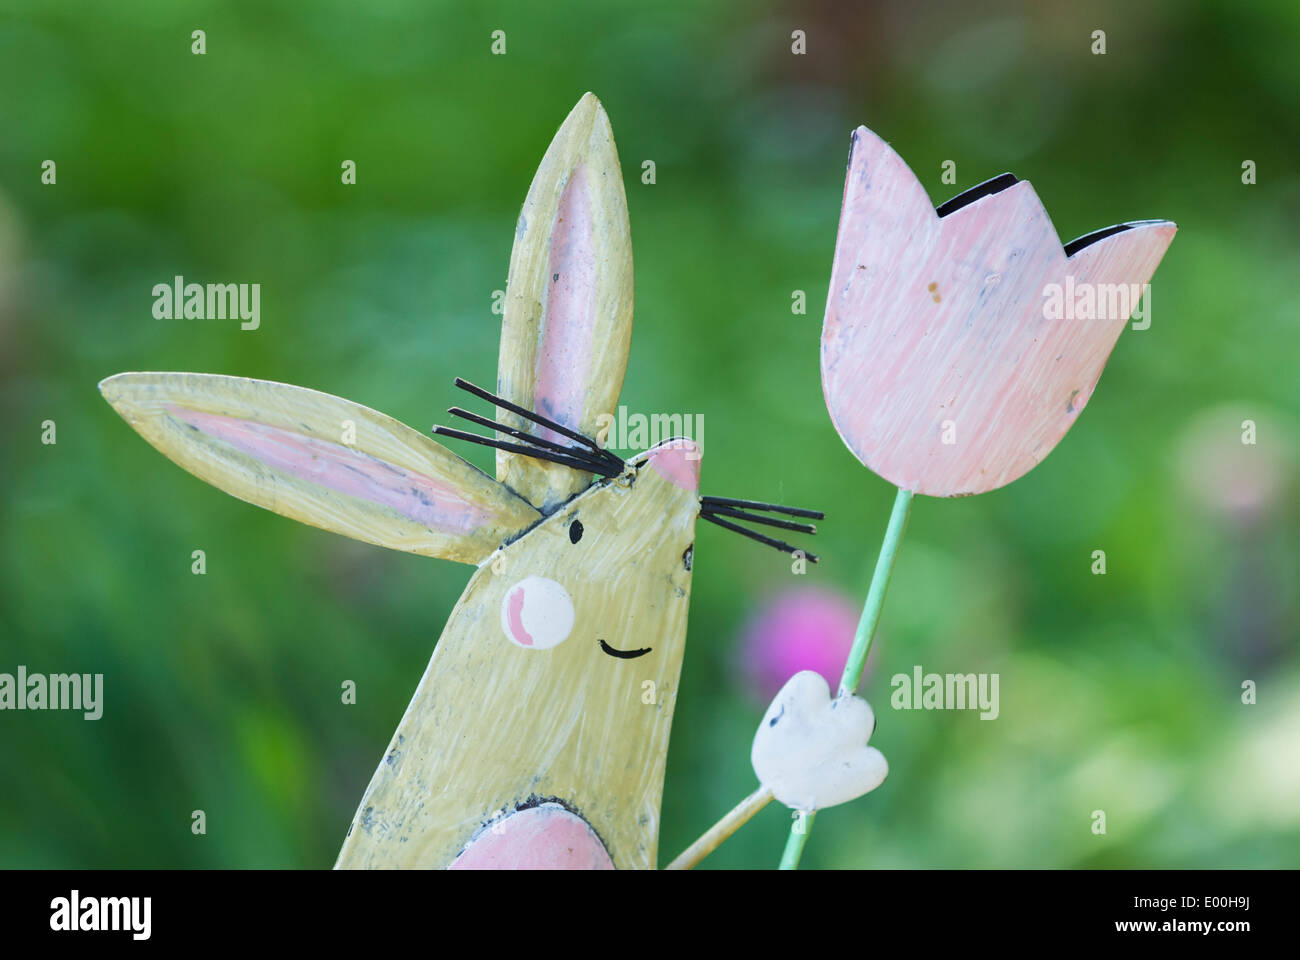 painted metal toy bunny against green garden background - Stock Image